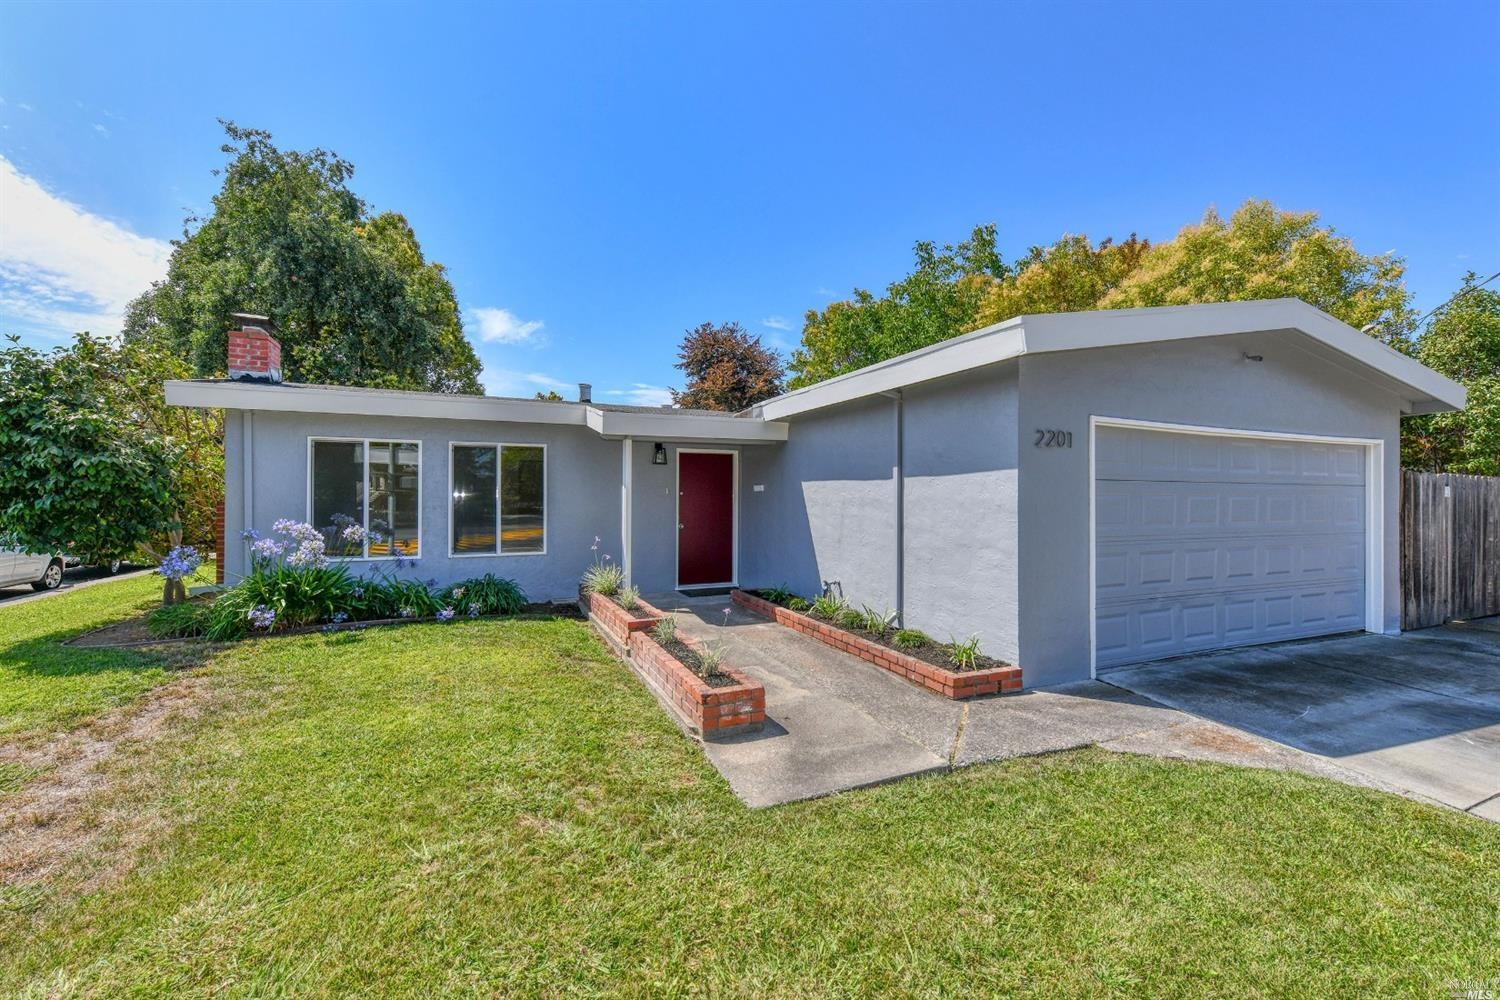 Beautifully updated, this 3Bed/2Bath, single story home is move in ready. Updated highlights include